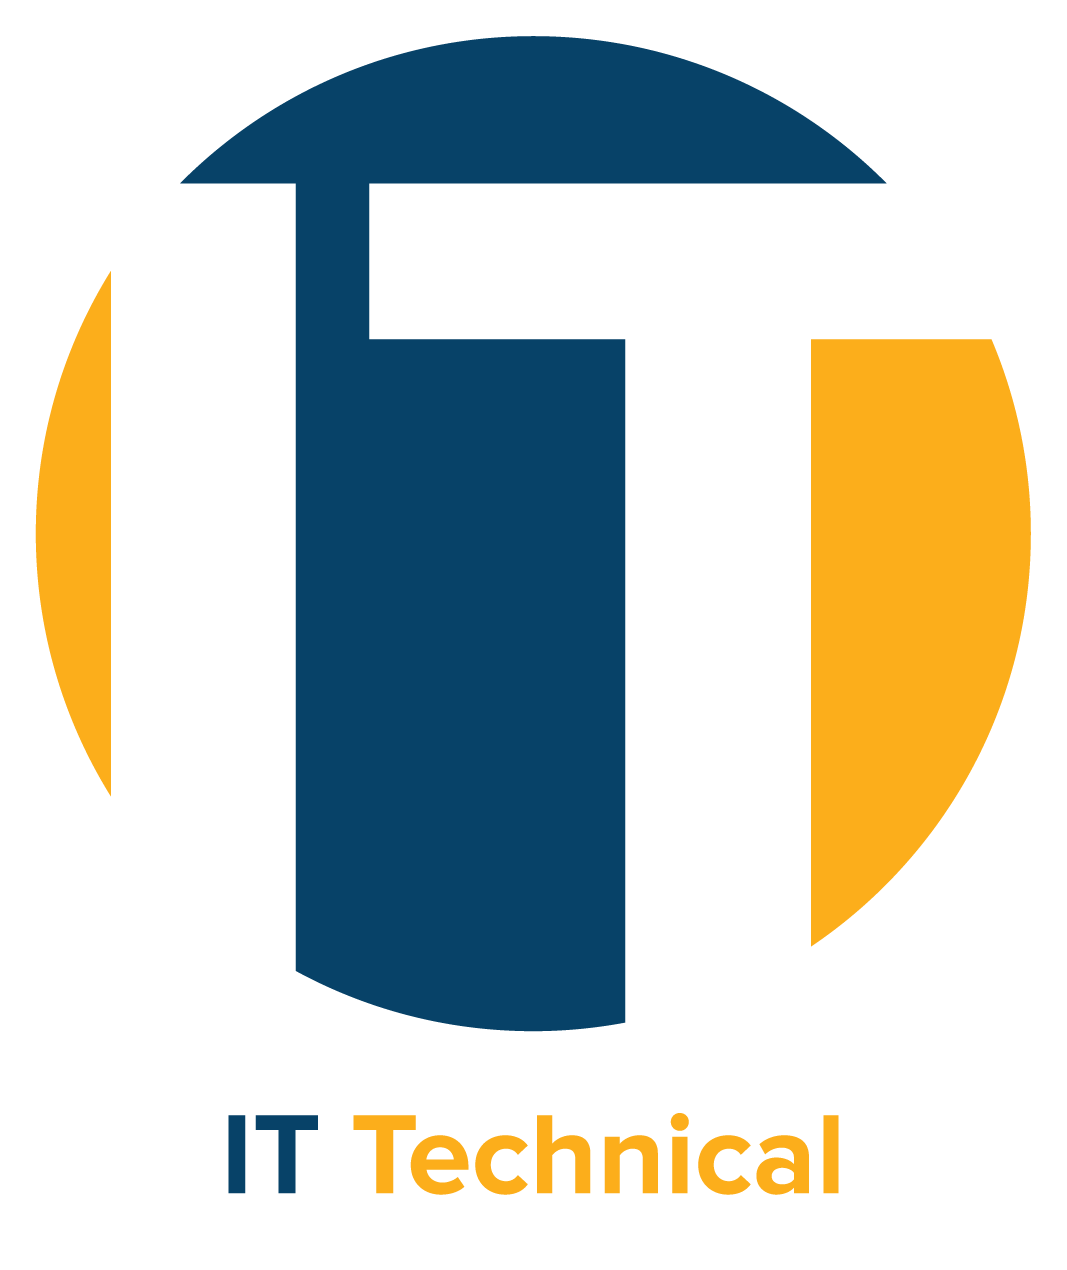 IT Technical - Certification Training & IT Courses with Guaranteed ResultsVendor Logo